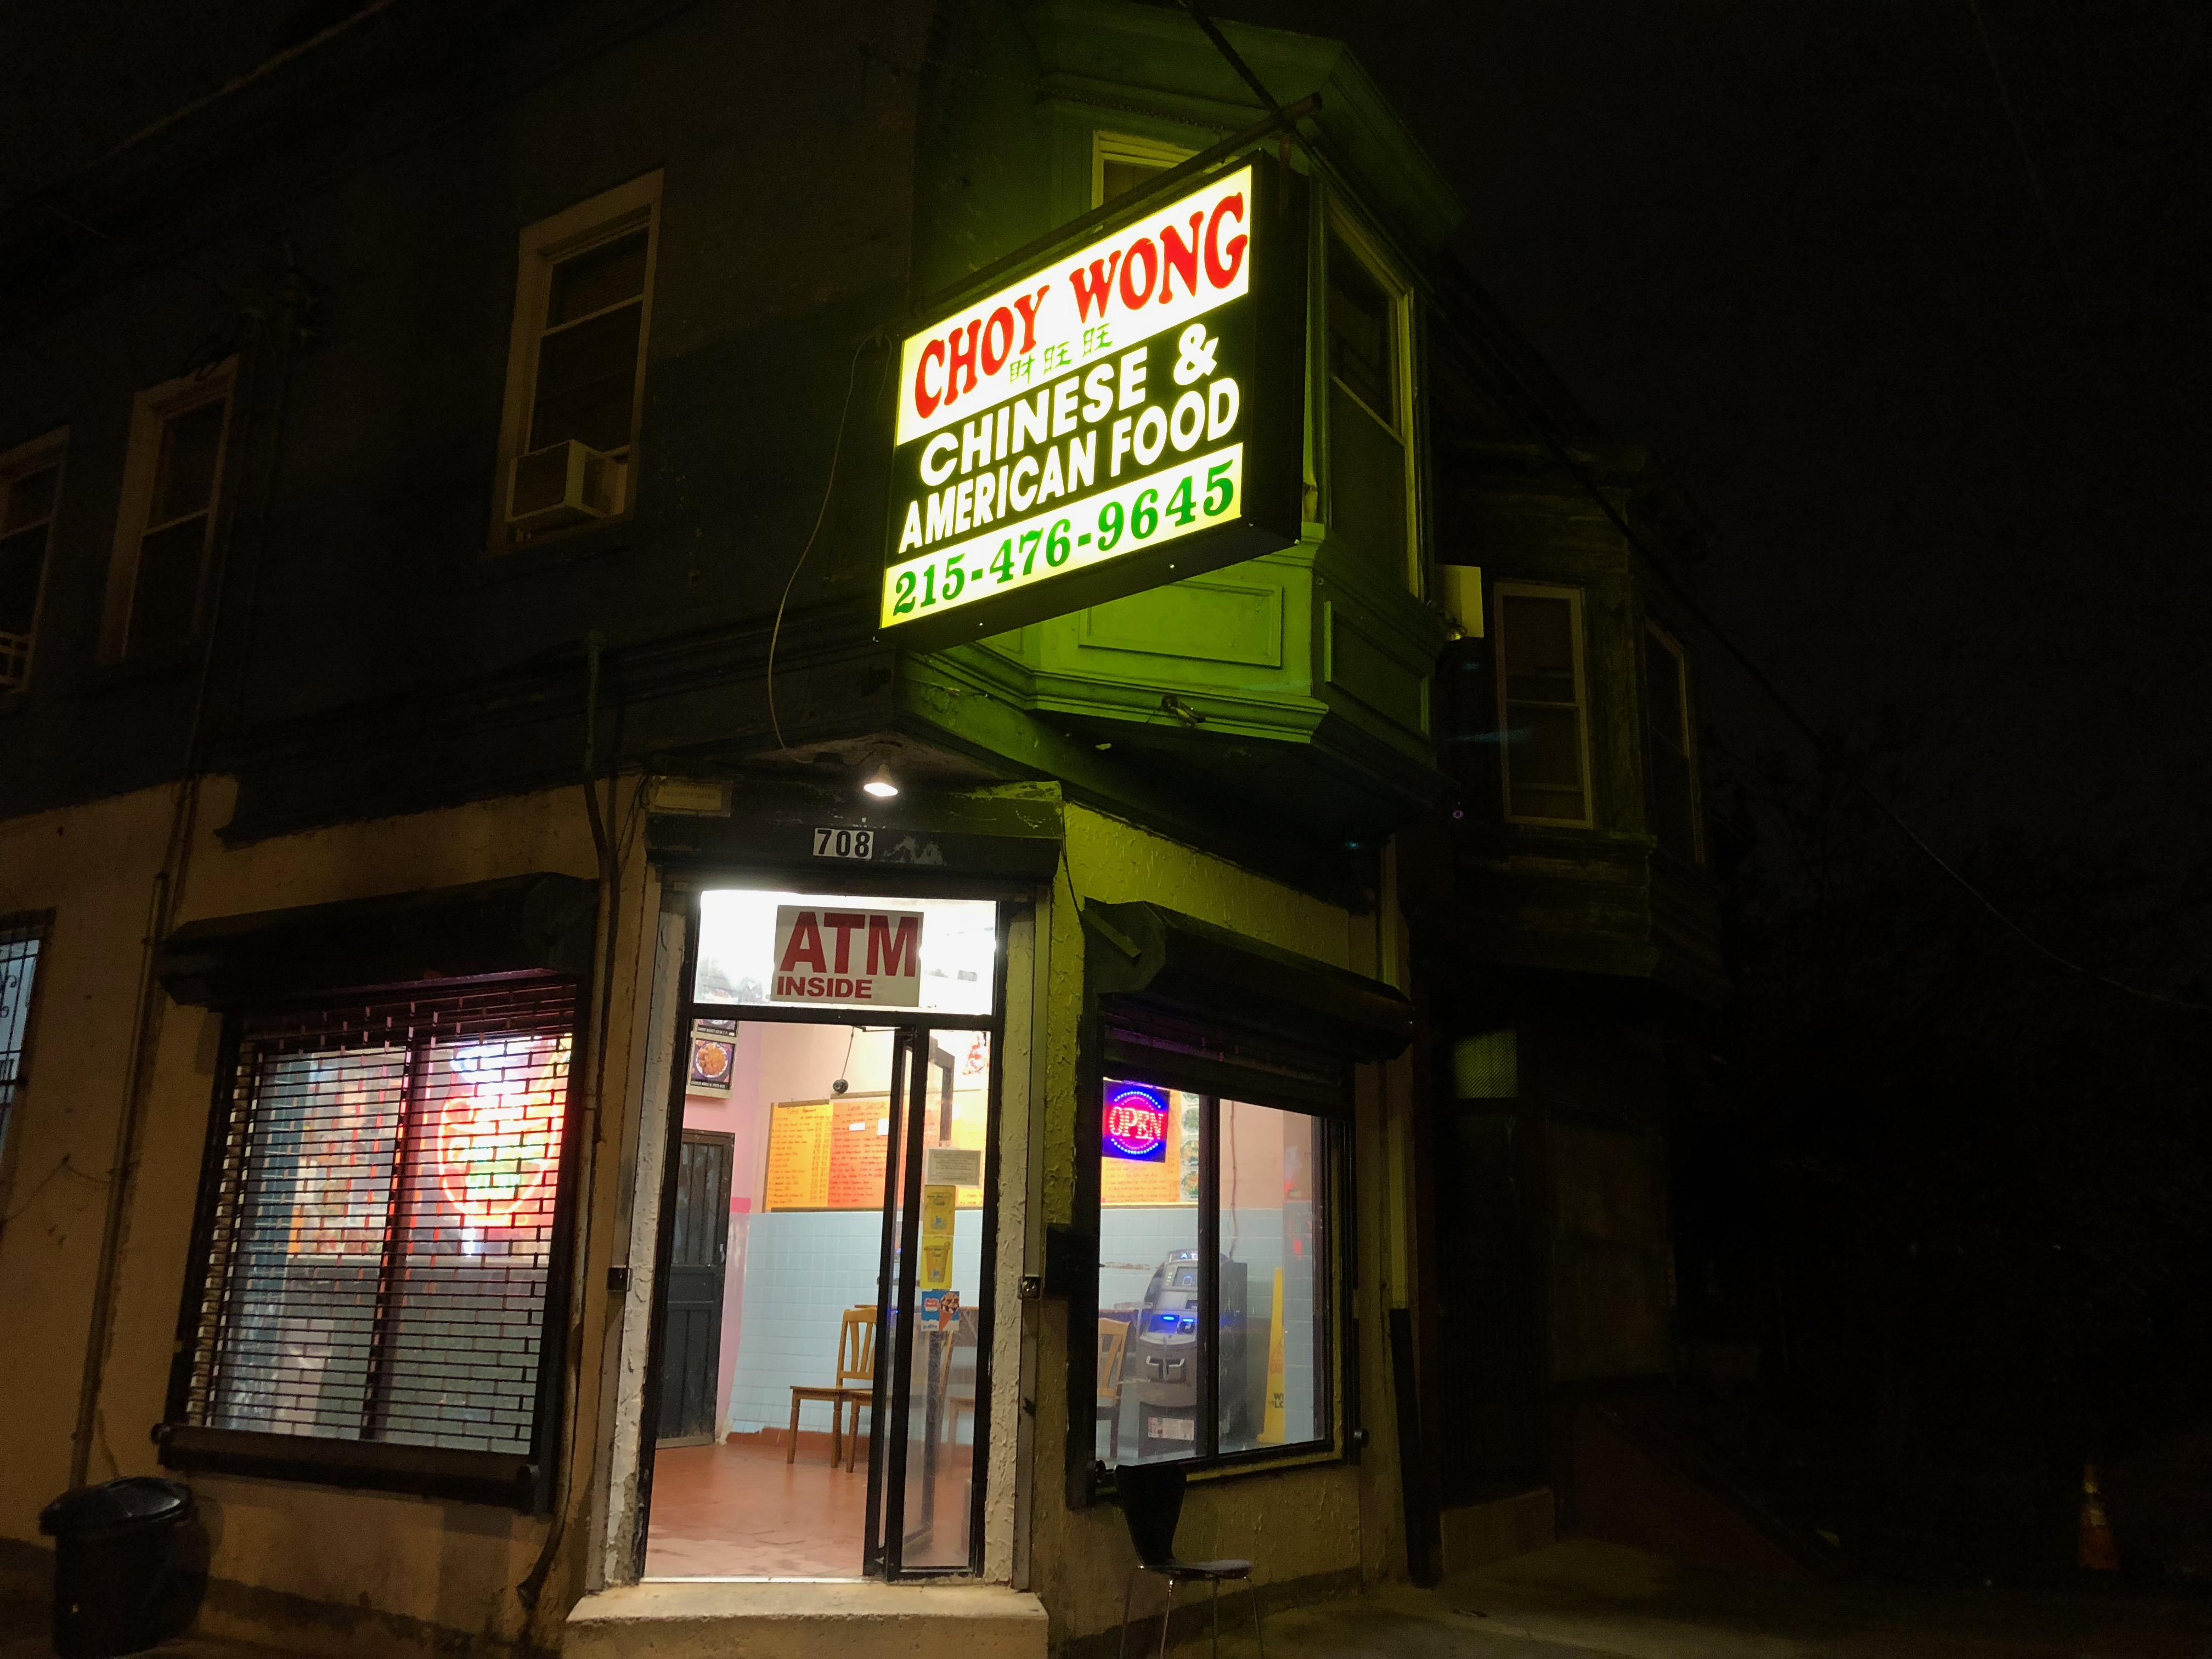 Choy Wong Is One Of Many Chinese Takeout Restaurants In West Philadelphia There Are Over 400 These Places More Than The Number Most